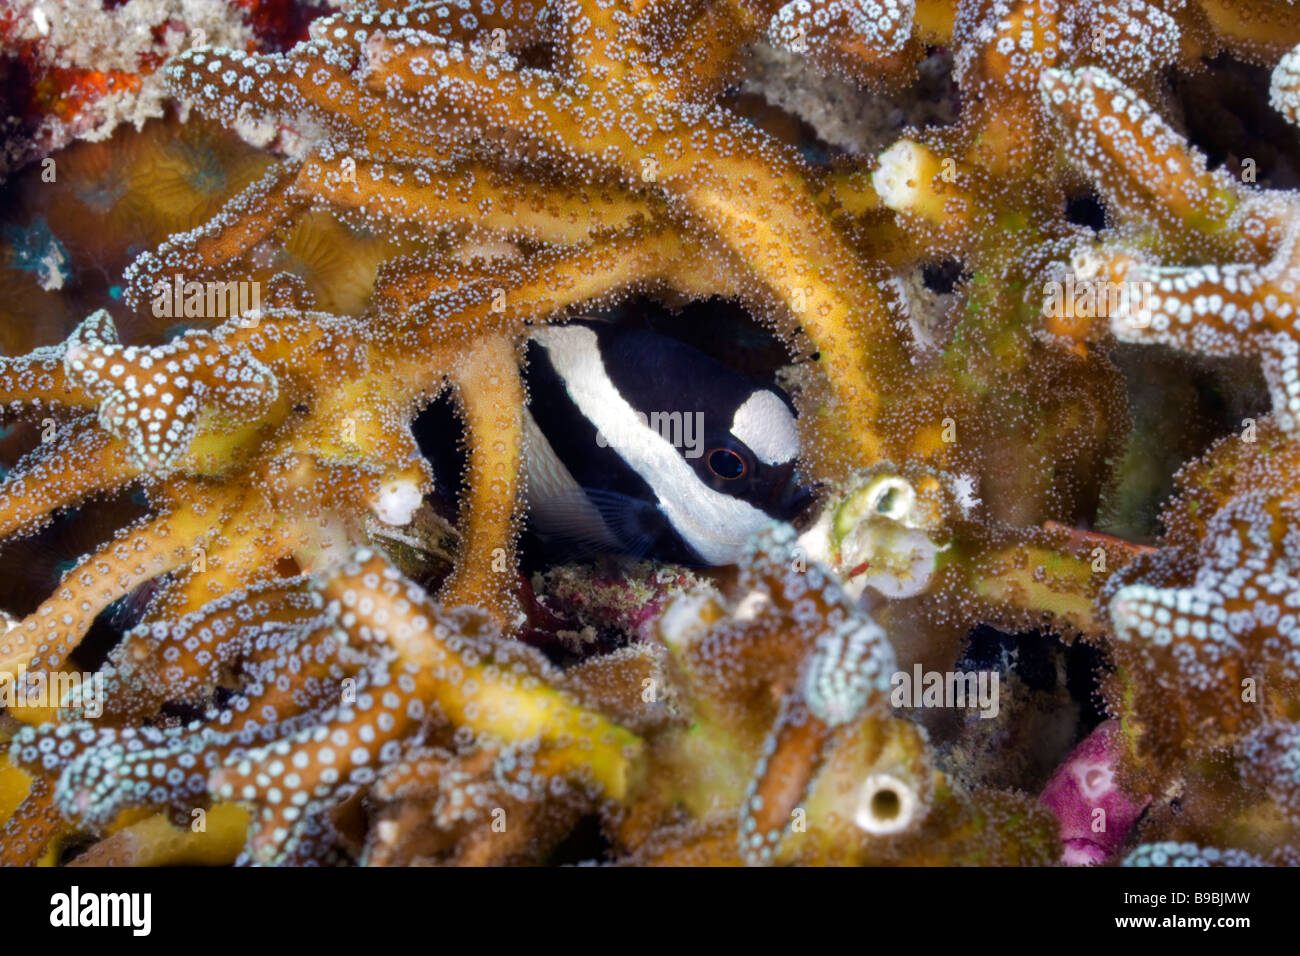 A Humbug Dascyllus damselfish peers out of his hiding place in the coral reef near Sipadan Island in The Celebes - Stock Image